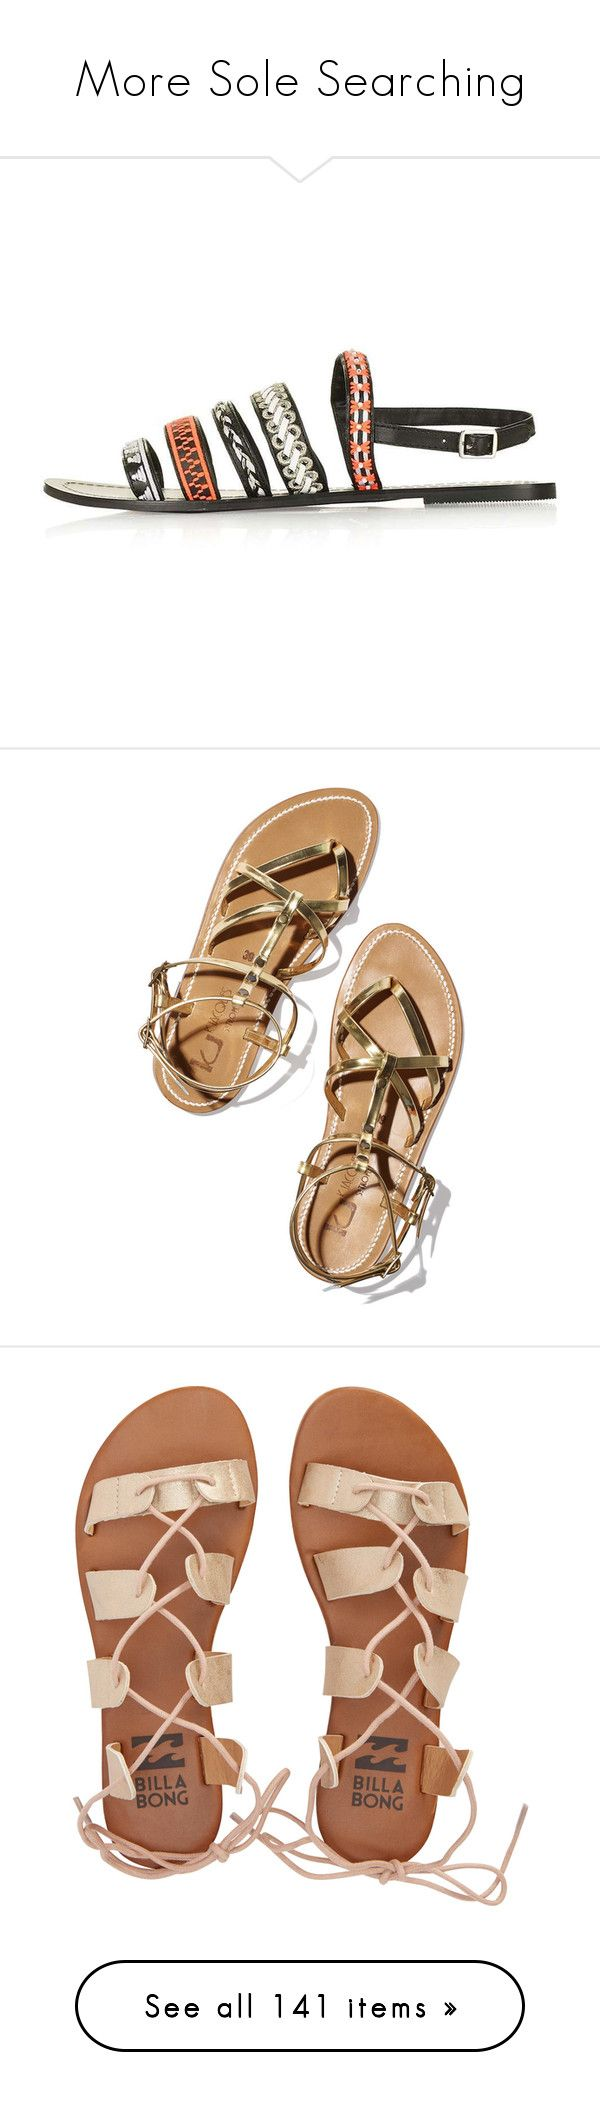 """""""More Sole Searching"""" by happilyjynxed ❤ liked on Polyvore featuring shoes, sandals, flats, topshop shoes, topshop sandals, strap flat shoes, multi-strap sandals, t-strap flats, summer sandals and roman sandals"""